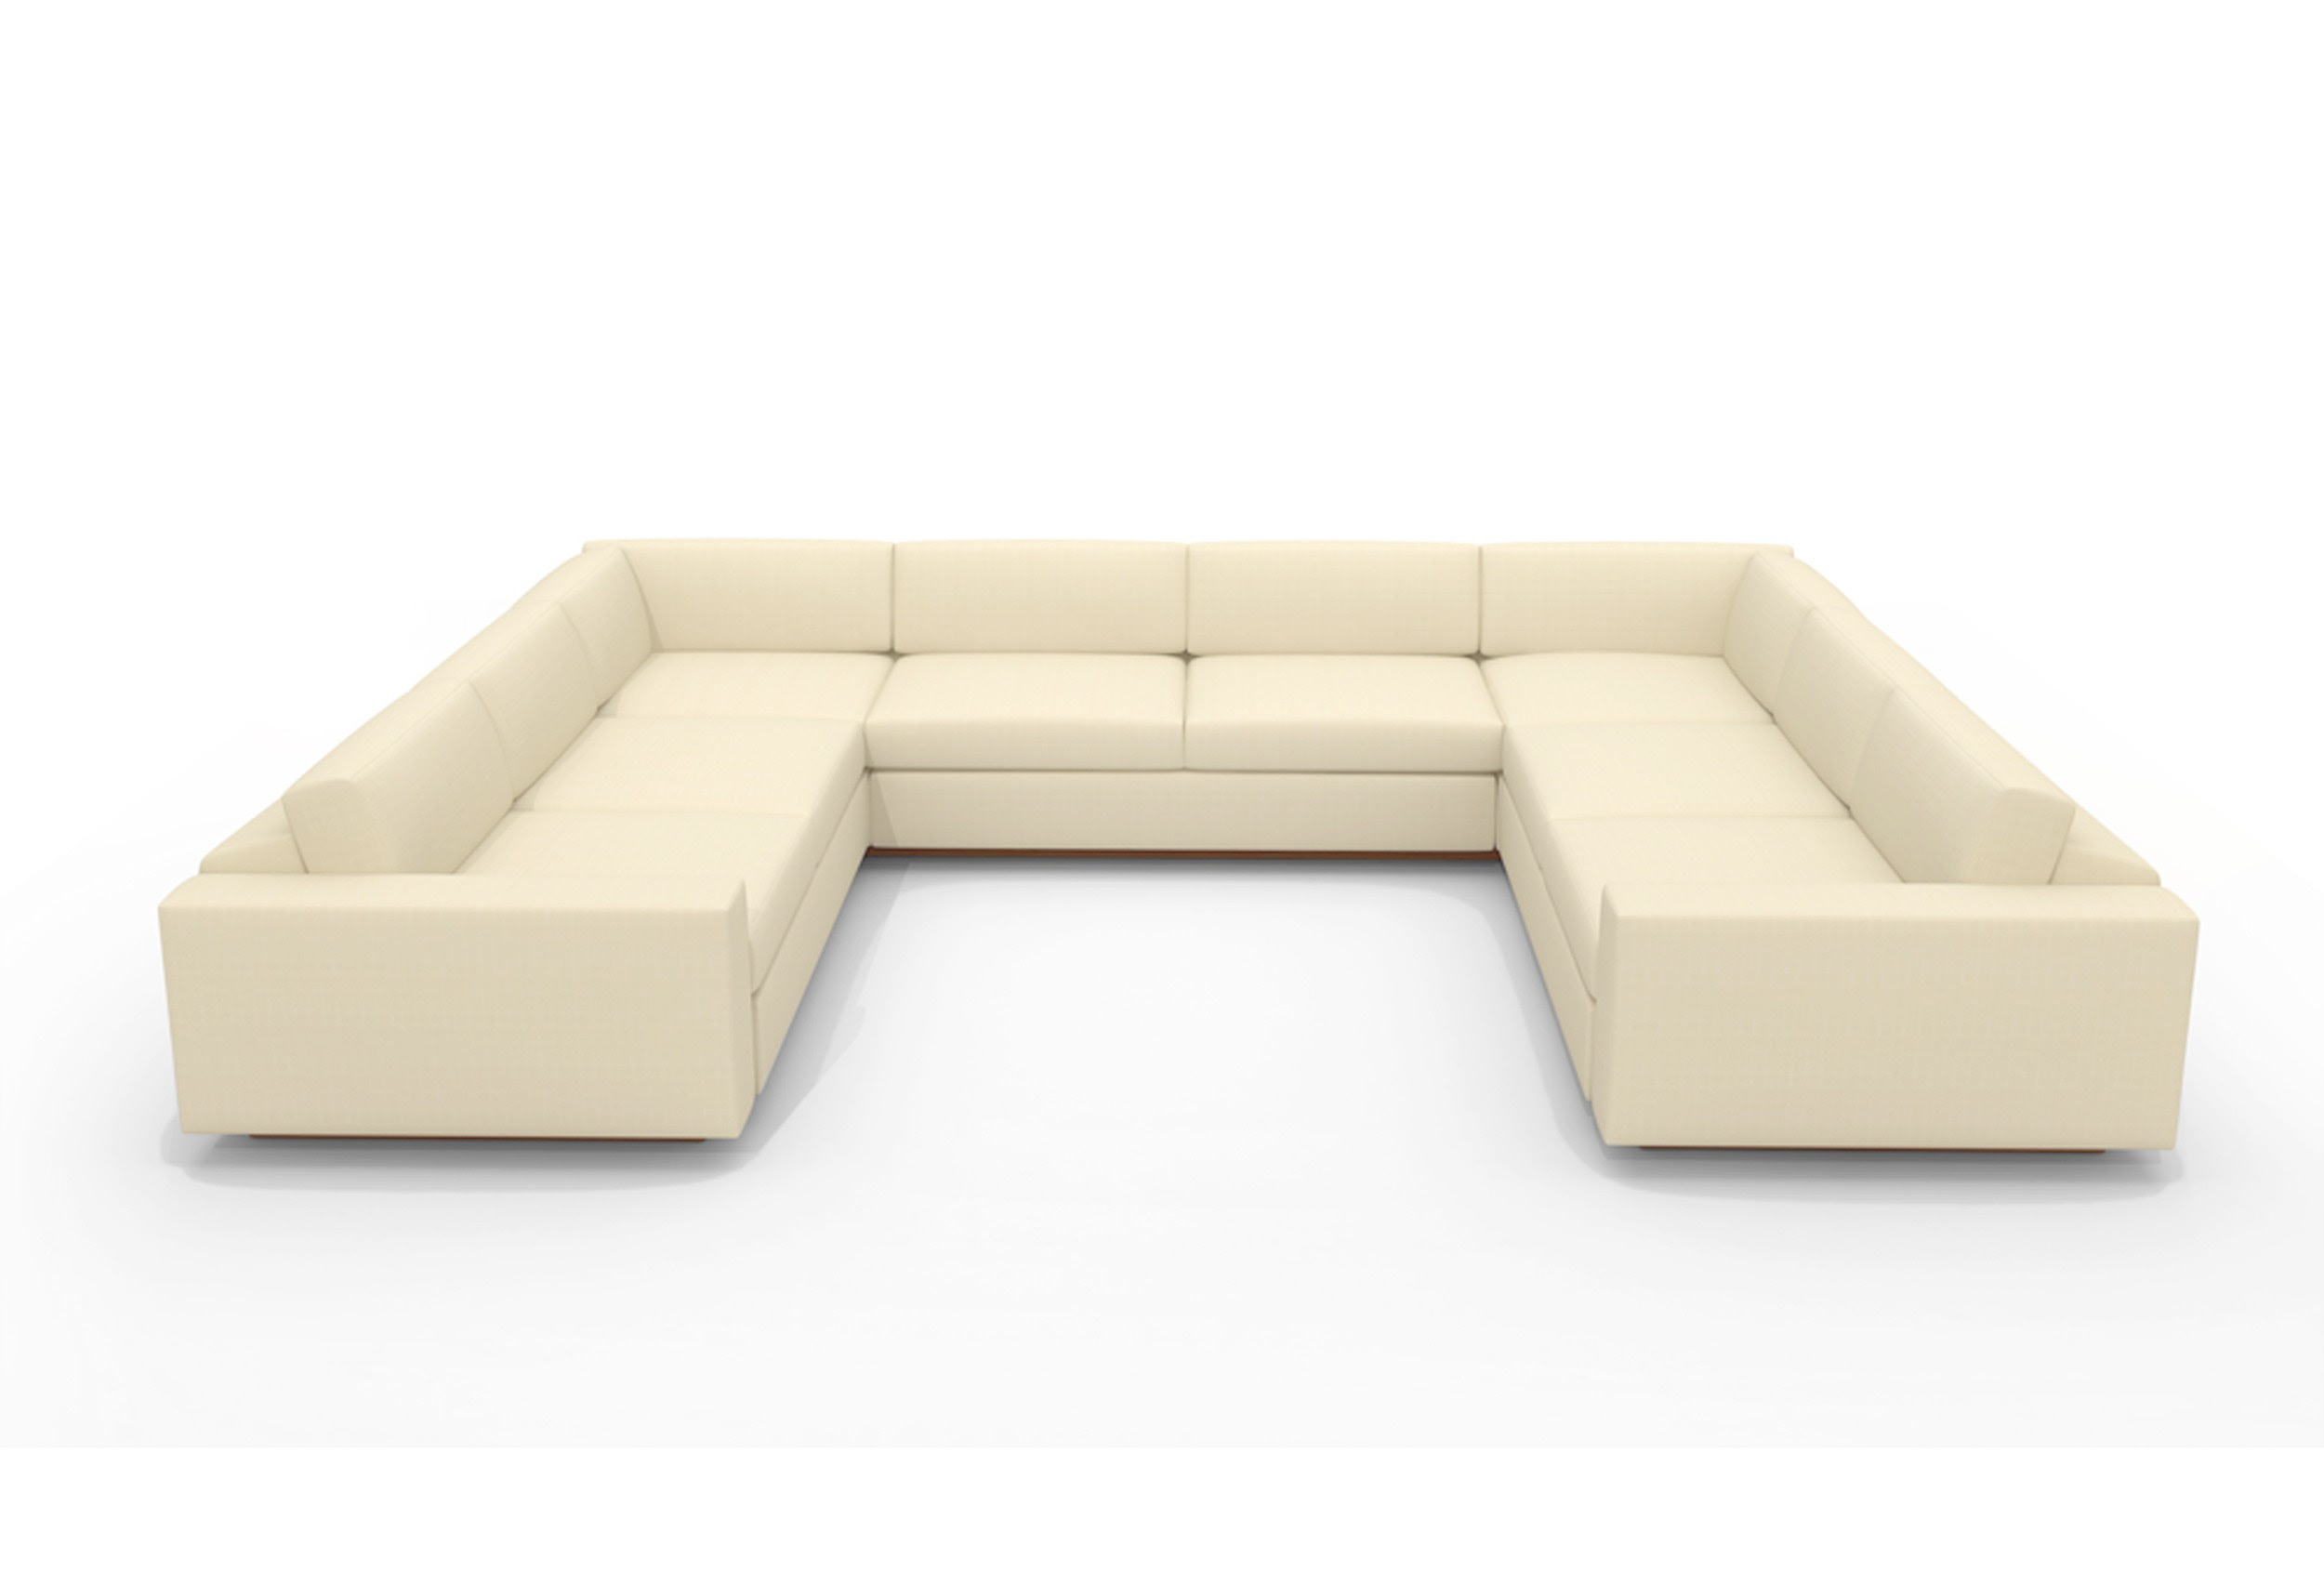 U Shaped Sectional Sofa With Light Cream Color